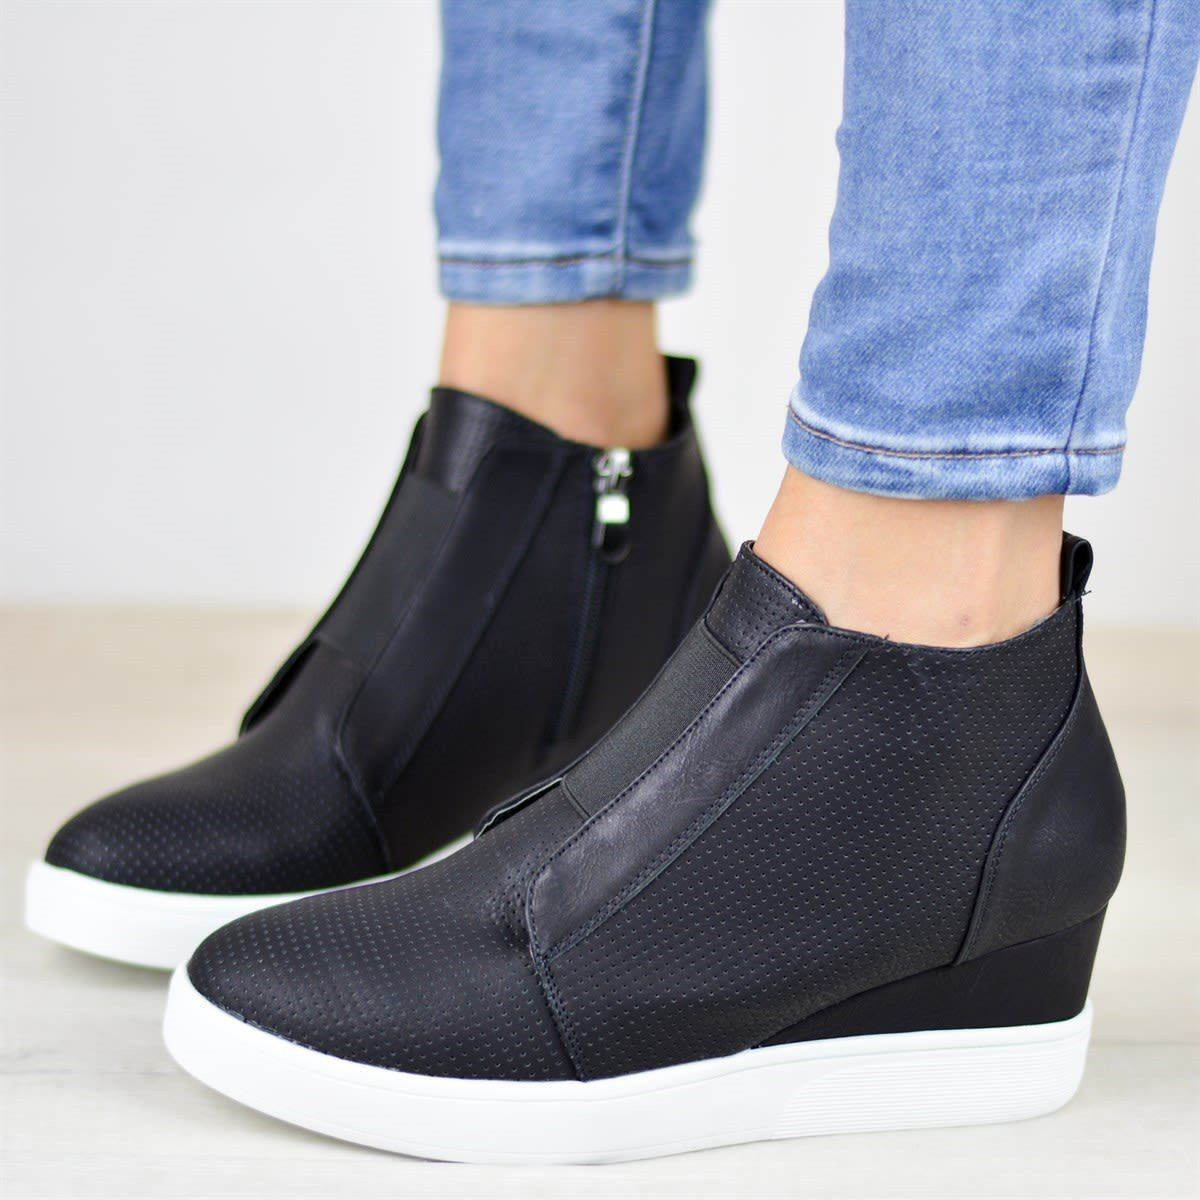 Comfort Zipper Wedge Sneakers Plus Size Wedges With Side